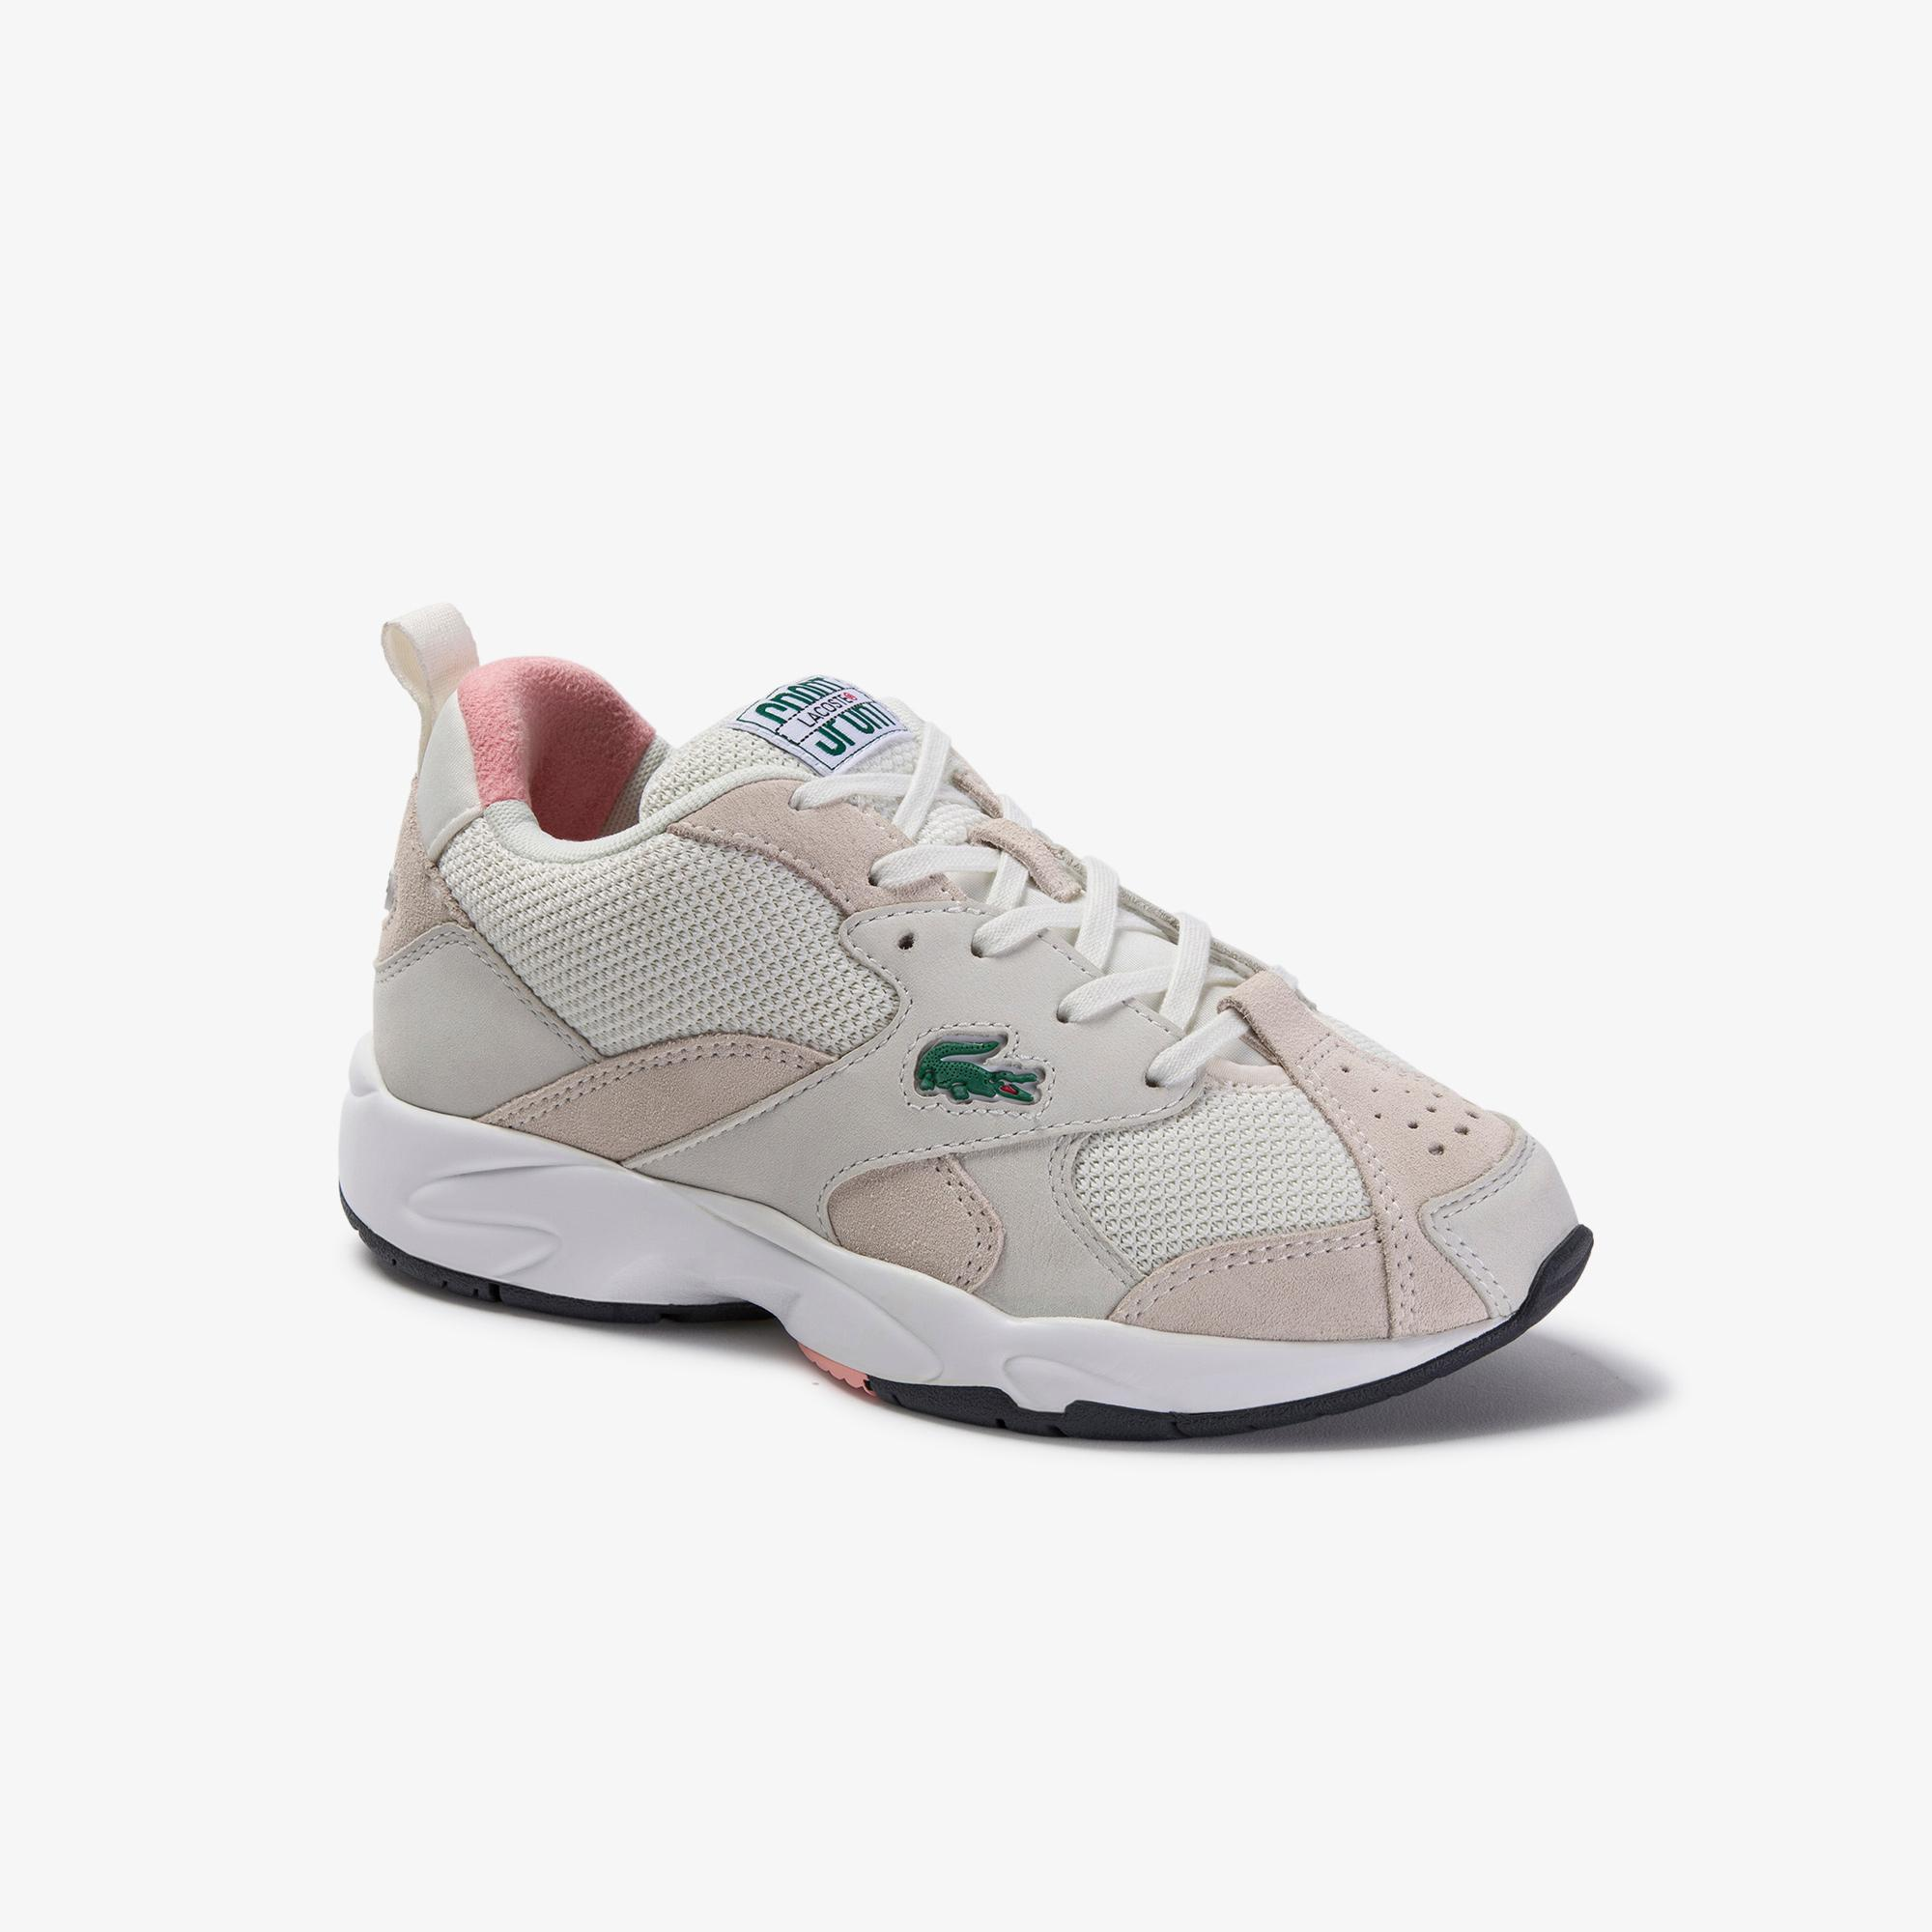 Lacoste Storm 96 120 3 US Sneakers